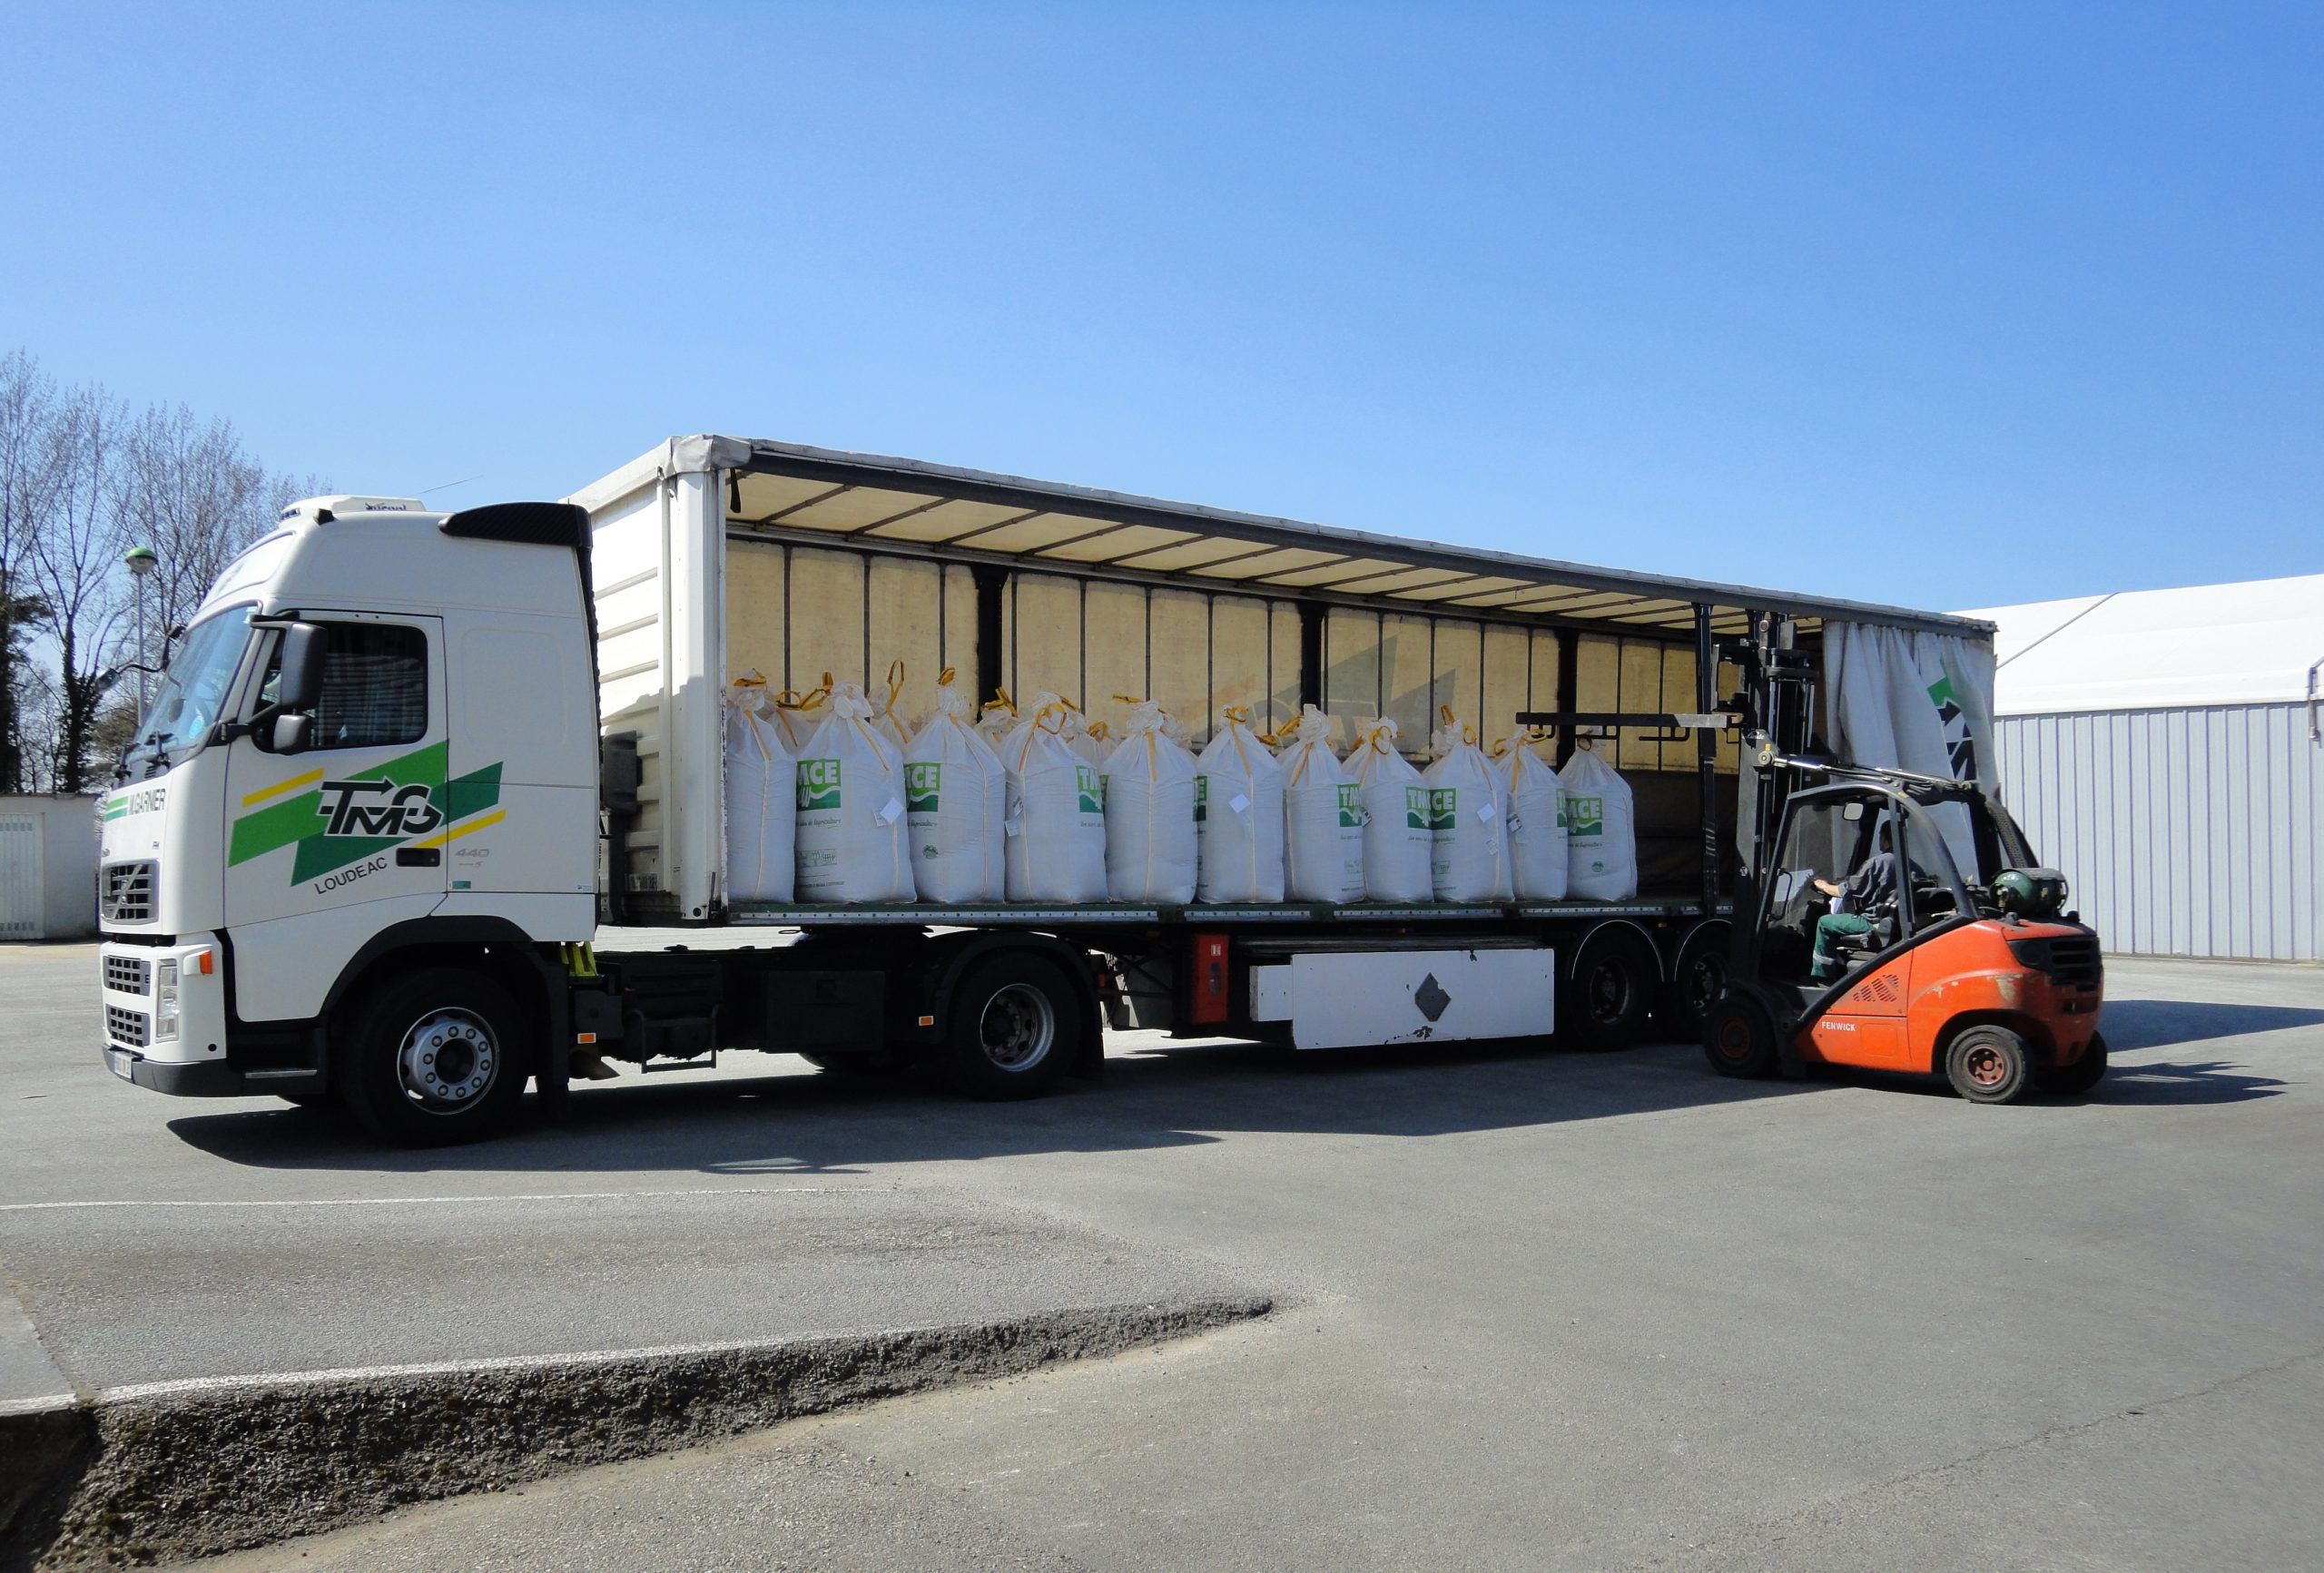 The FC standard sets requirements for storage and transport